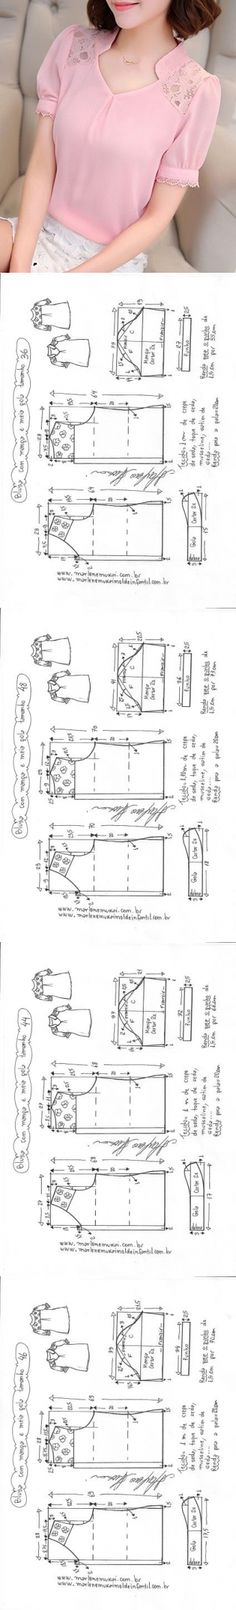 Tunic Sewing Patterns, Sewing Blouses, Baby Dress Patterns, Clothing Patterns, Dress Tutorials, Sewing Tutorials, Sewing Projects, Amarillis, Diy Couture